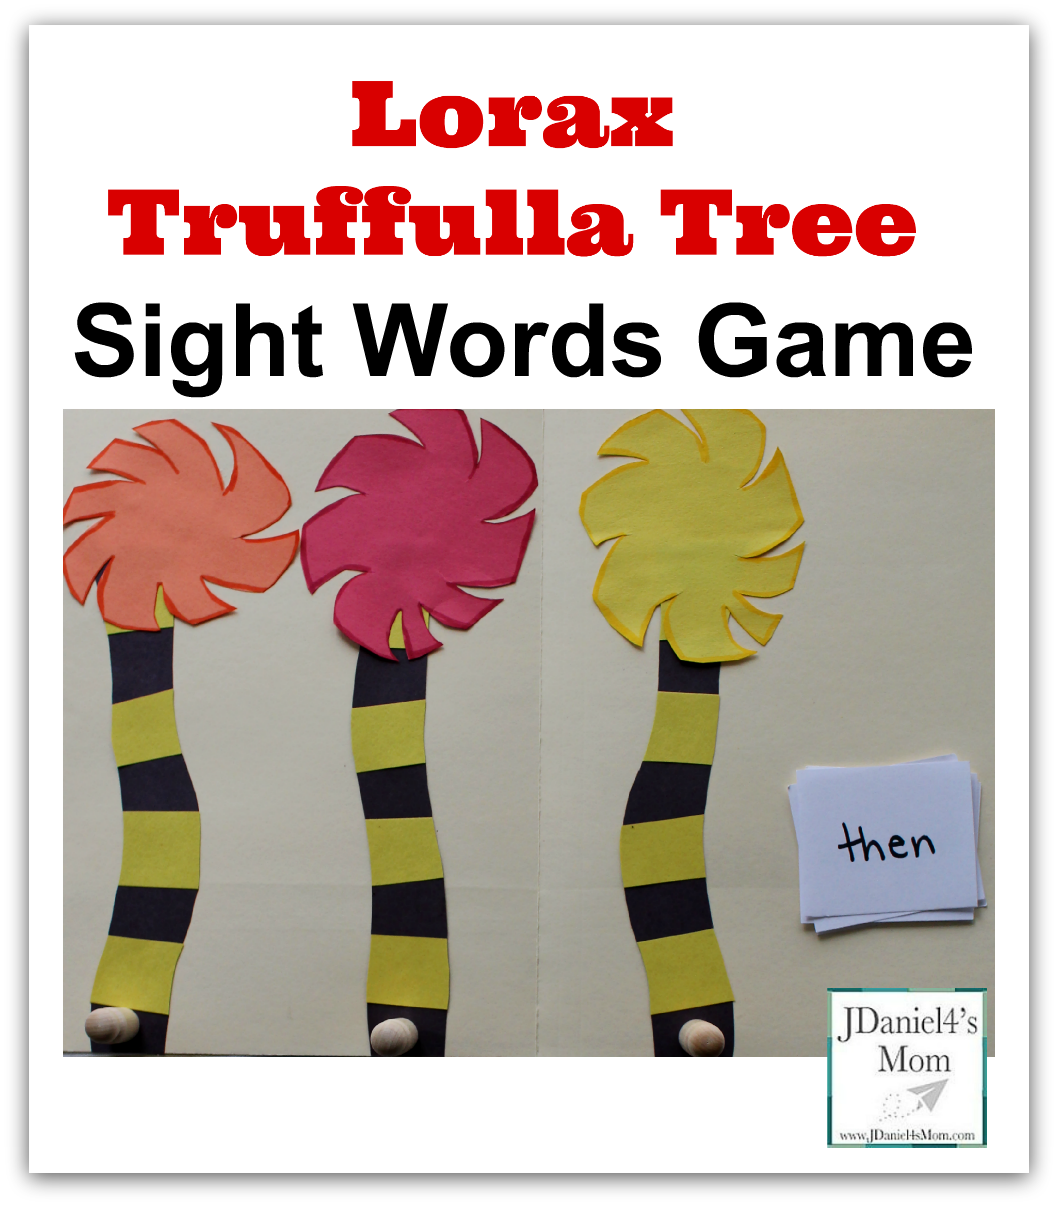 lorax truffulla tree sight words game